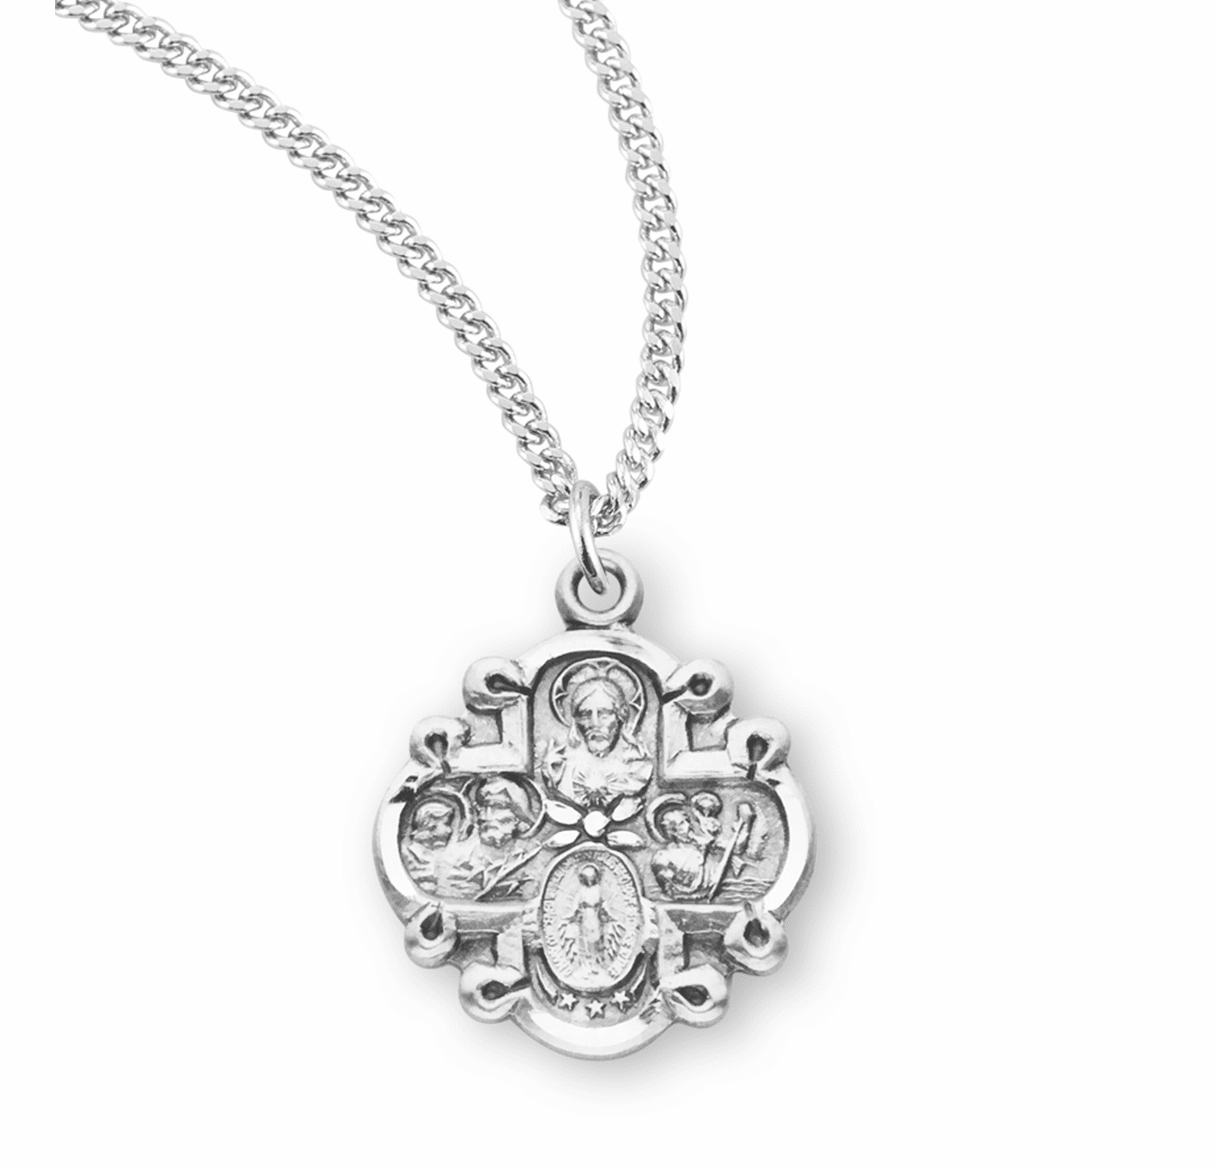 Small 4-Way Sterling Silver Cross Medal Necklace by HMH Religious